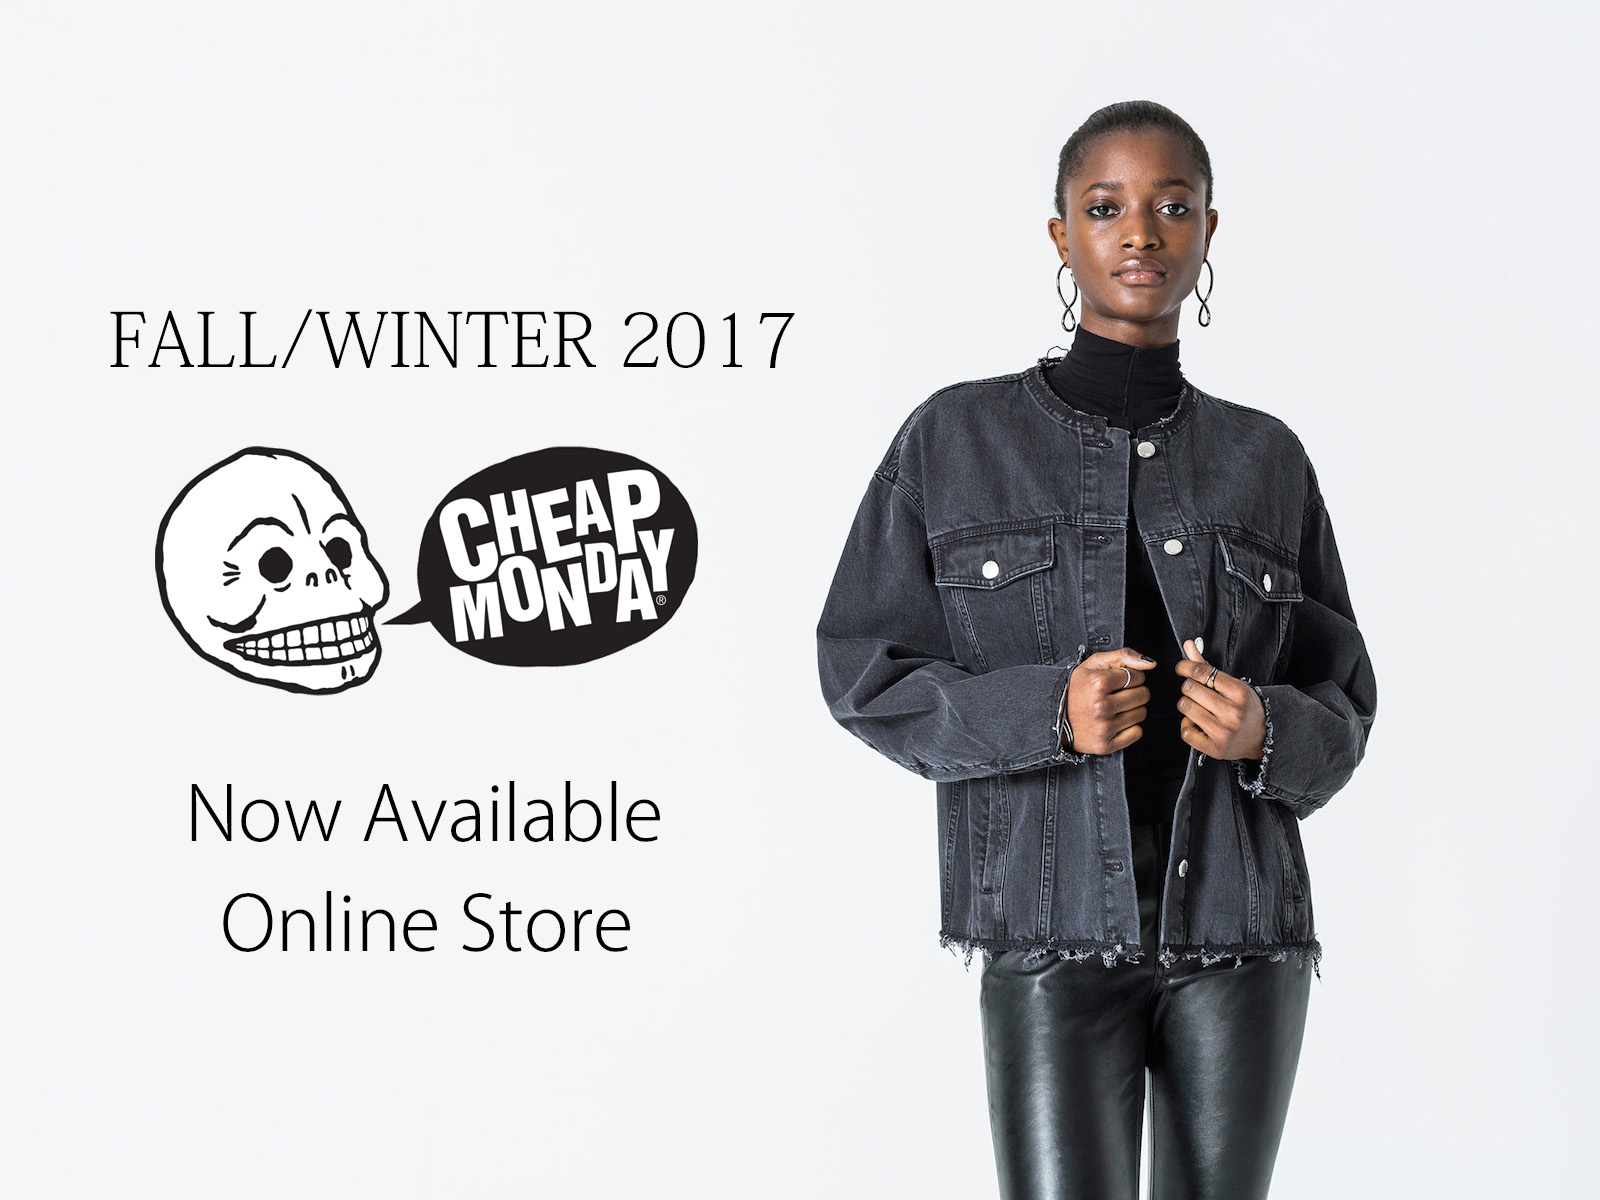 CHEAP MONDAY FALL/WINTER 2017 Now Available Online Store